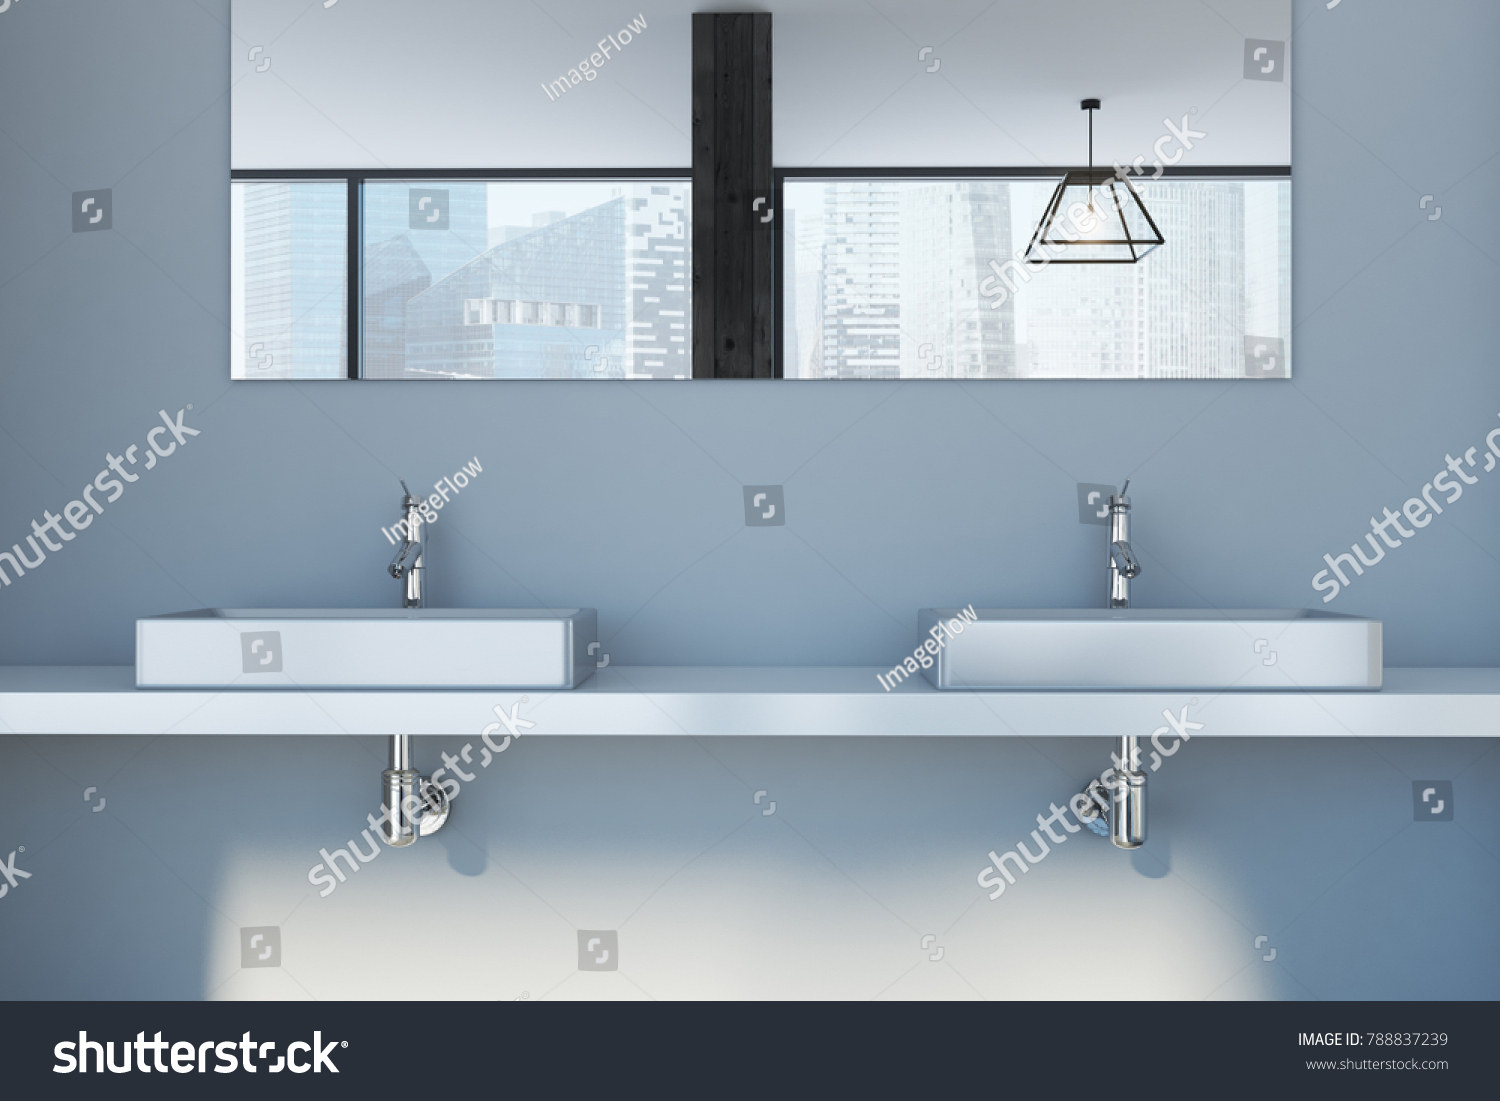 Gray Bathroom Interior Double Sink Standing Stock Illustration ...